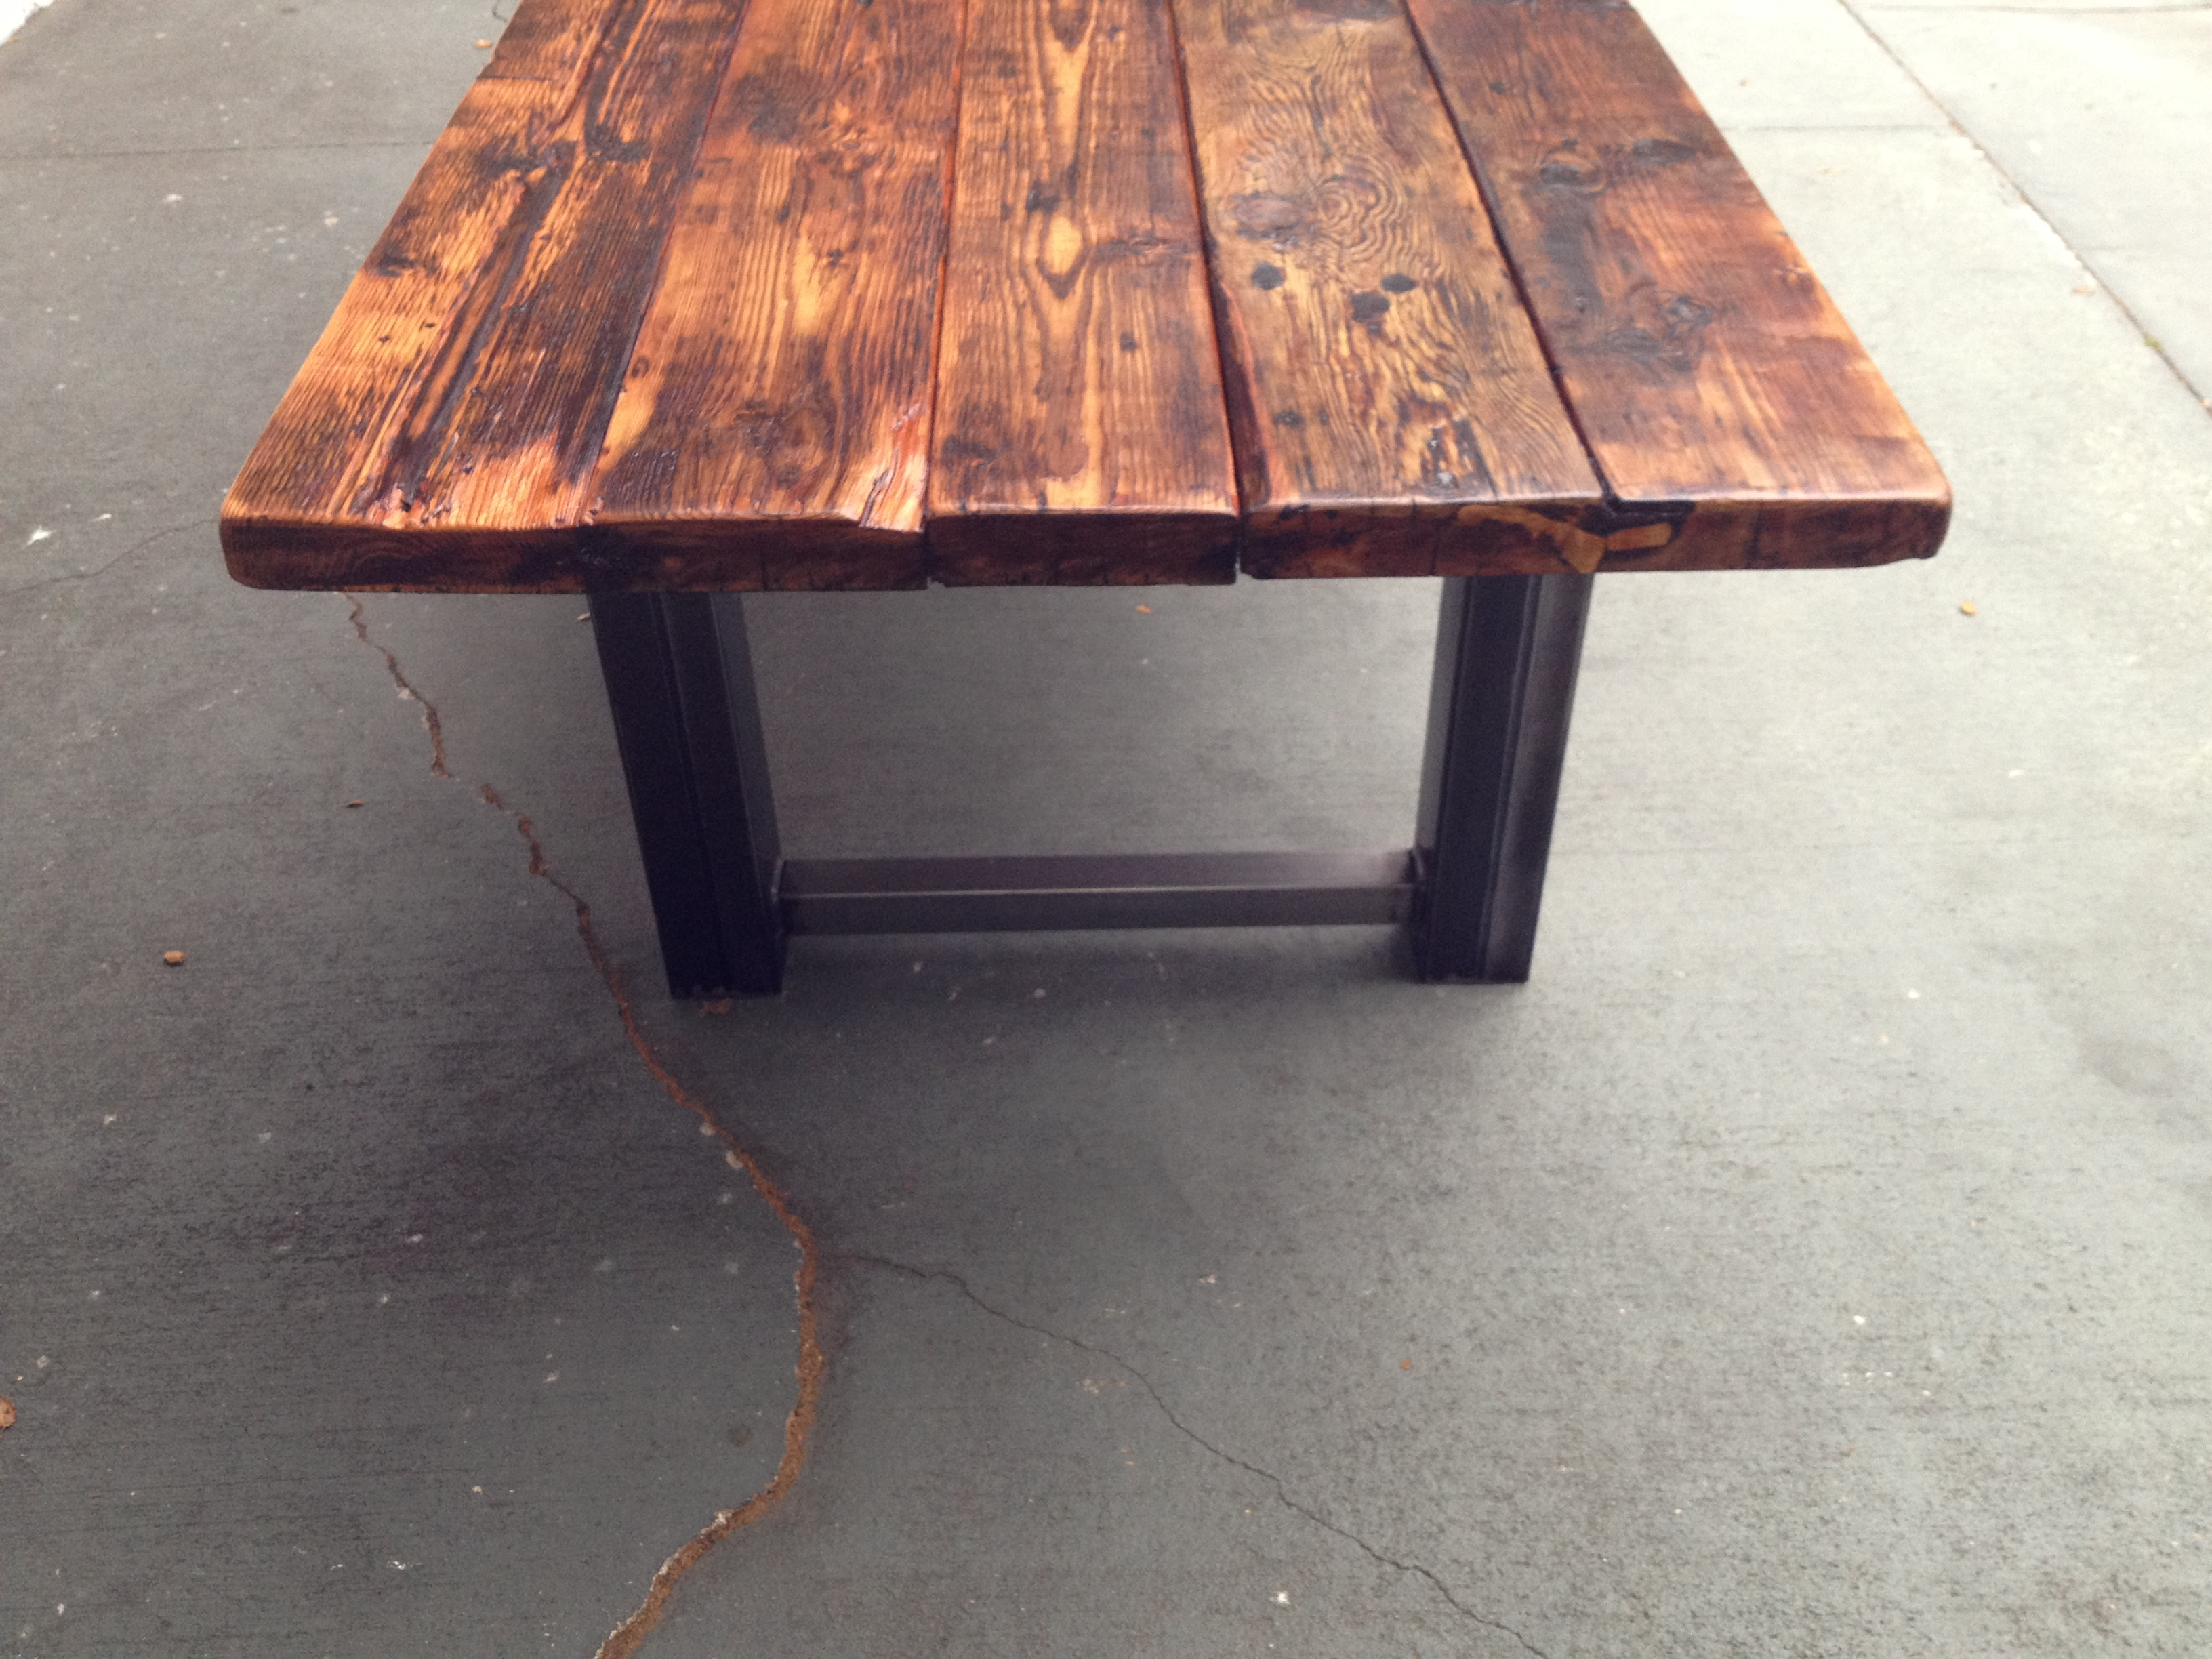 Rustic wood dining table plans plans diy how to make Wood and steel furniture